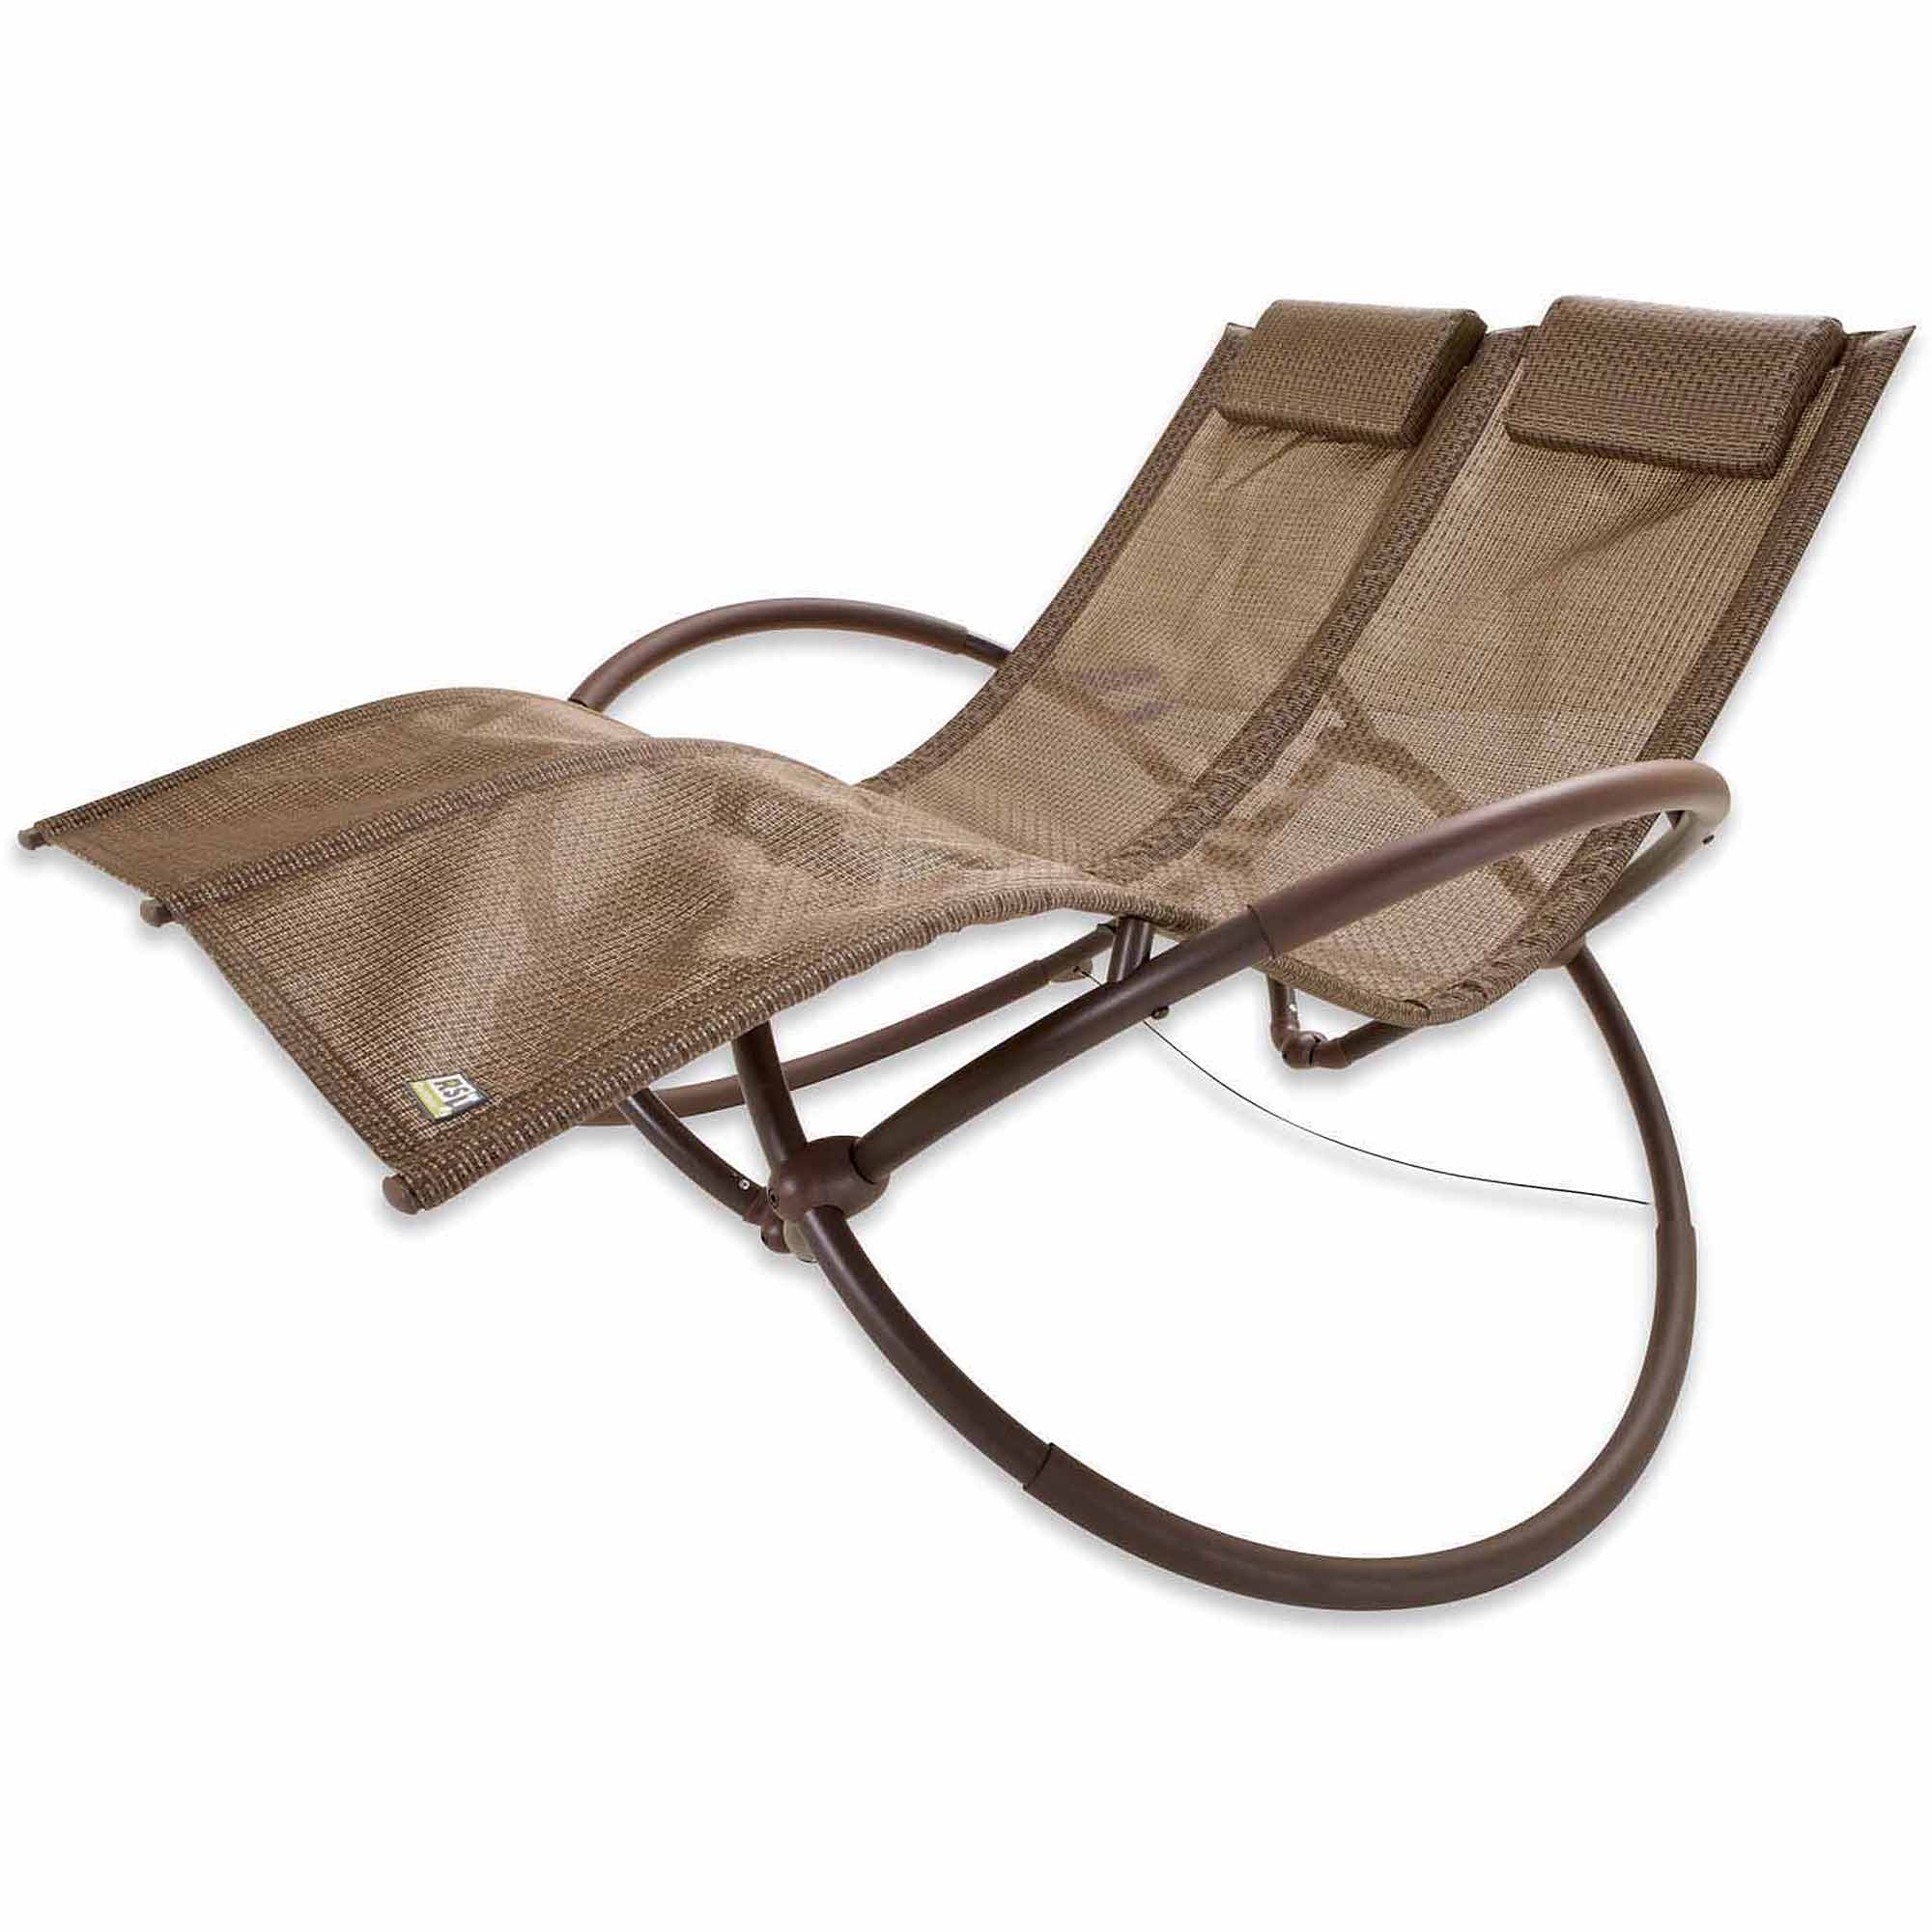 RST Brands Double Orbital Lounger, Brown